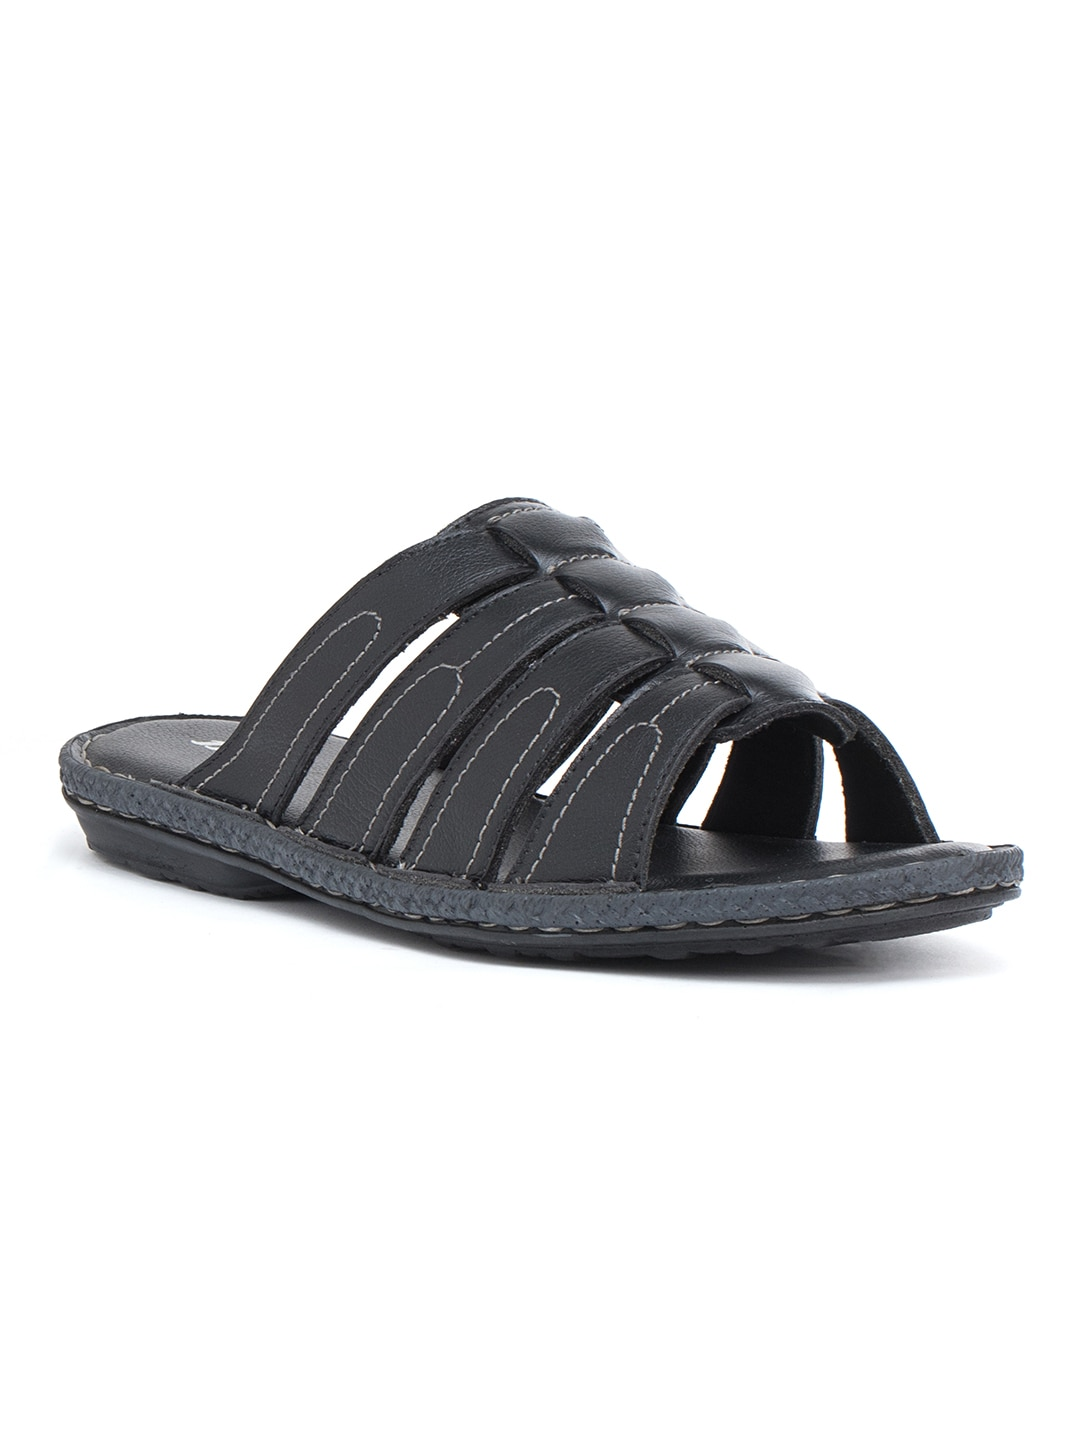 d8f1f13e5386 Bata Power Sandal - Buy Bata Power Sandal online in India